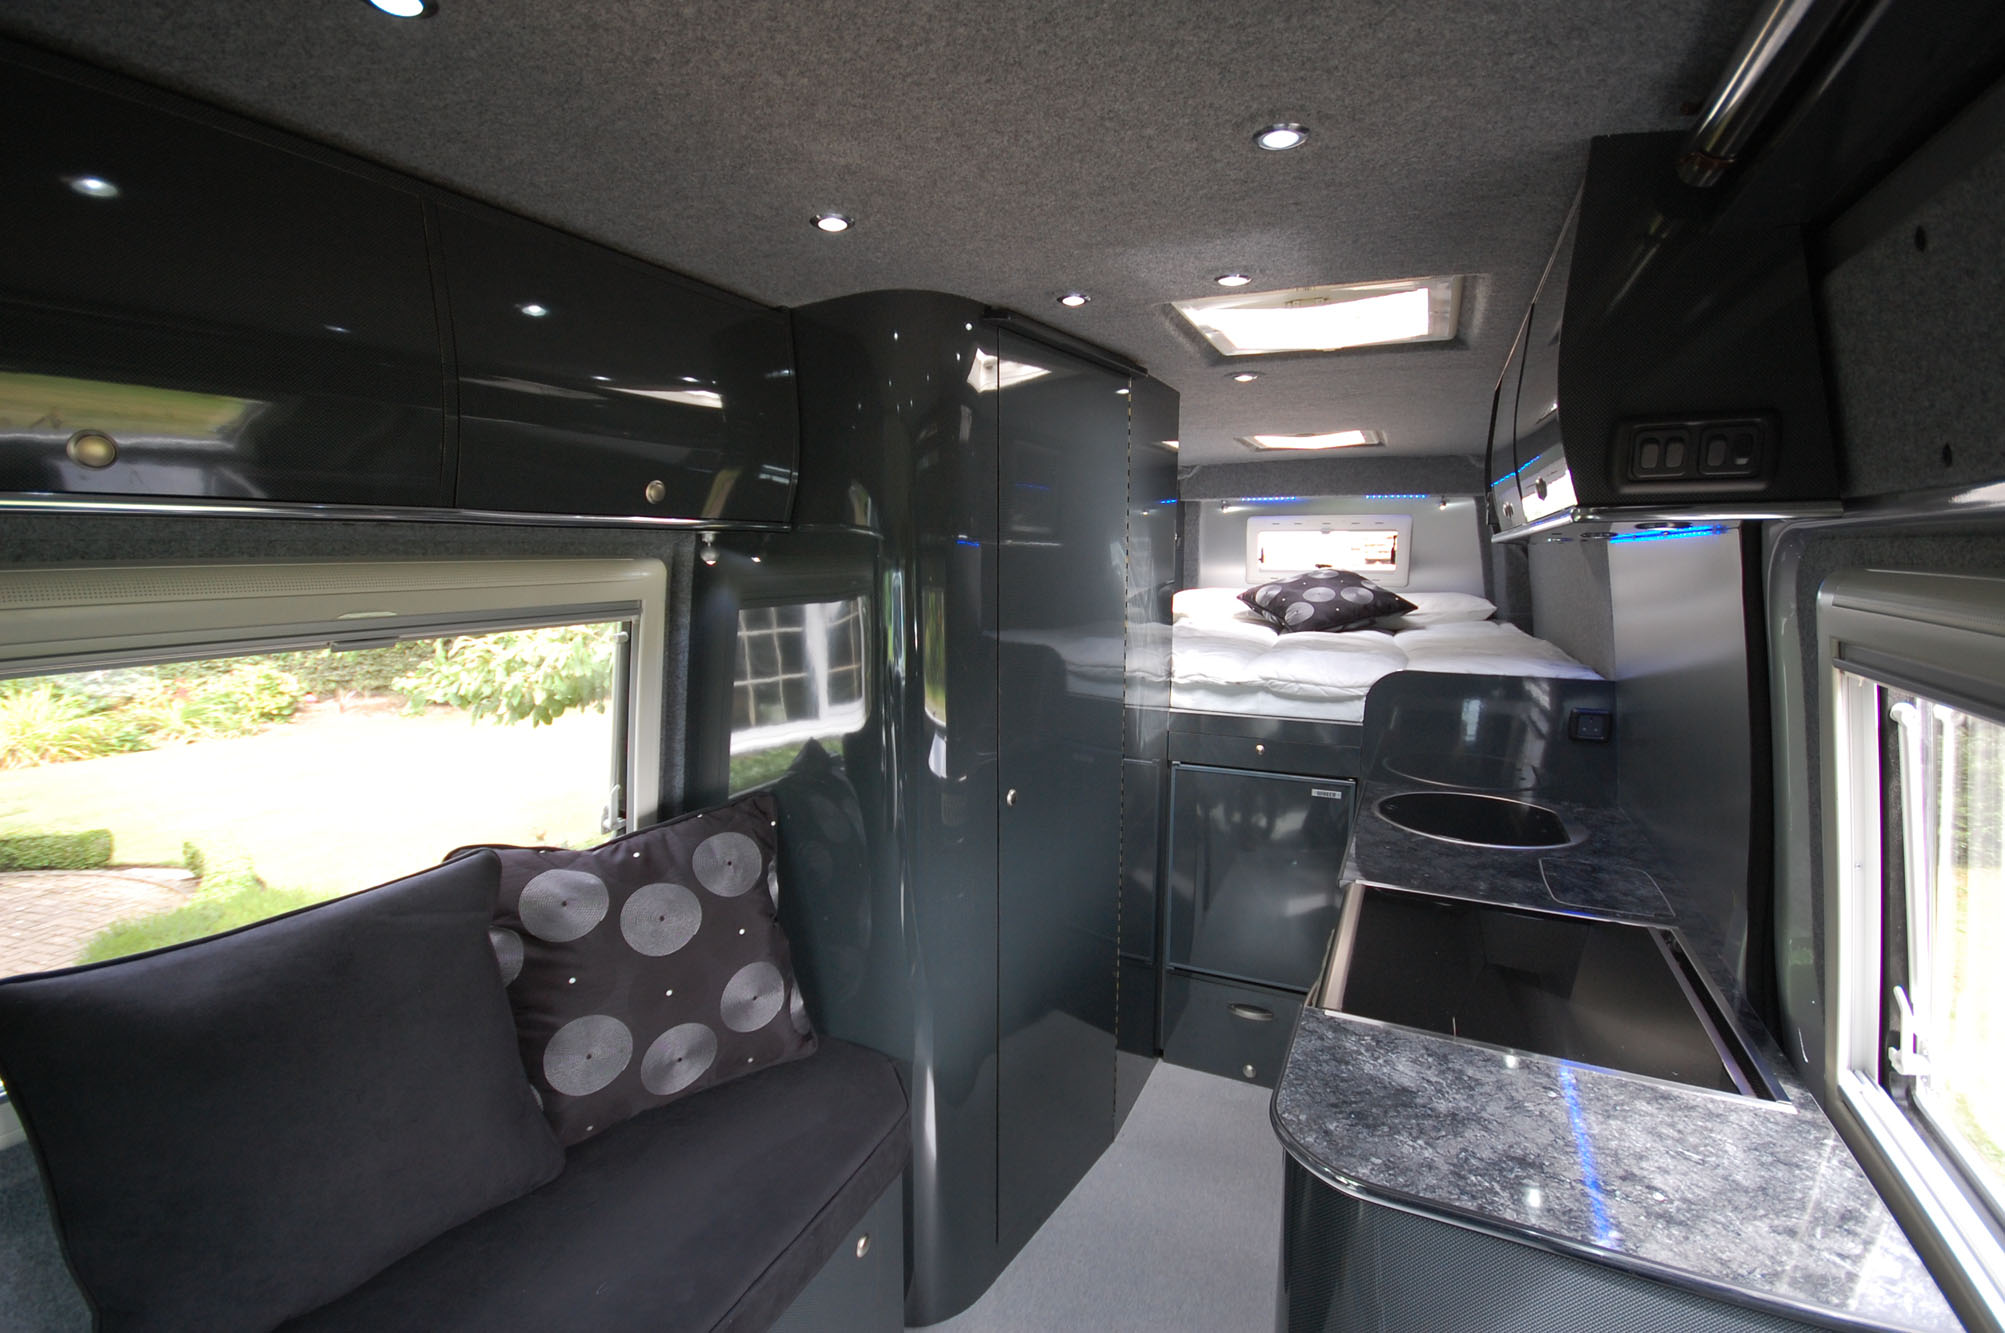 Interior floors walls and surfaces fitted in vehicle adaptation into holiday campervan